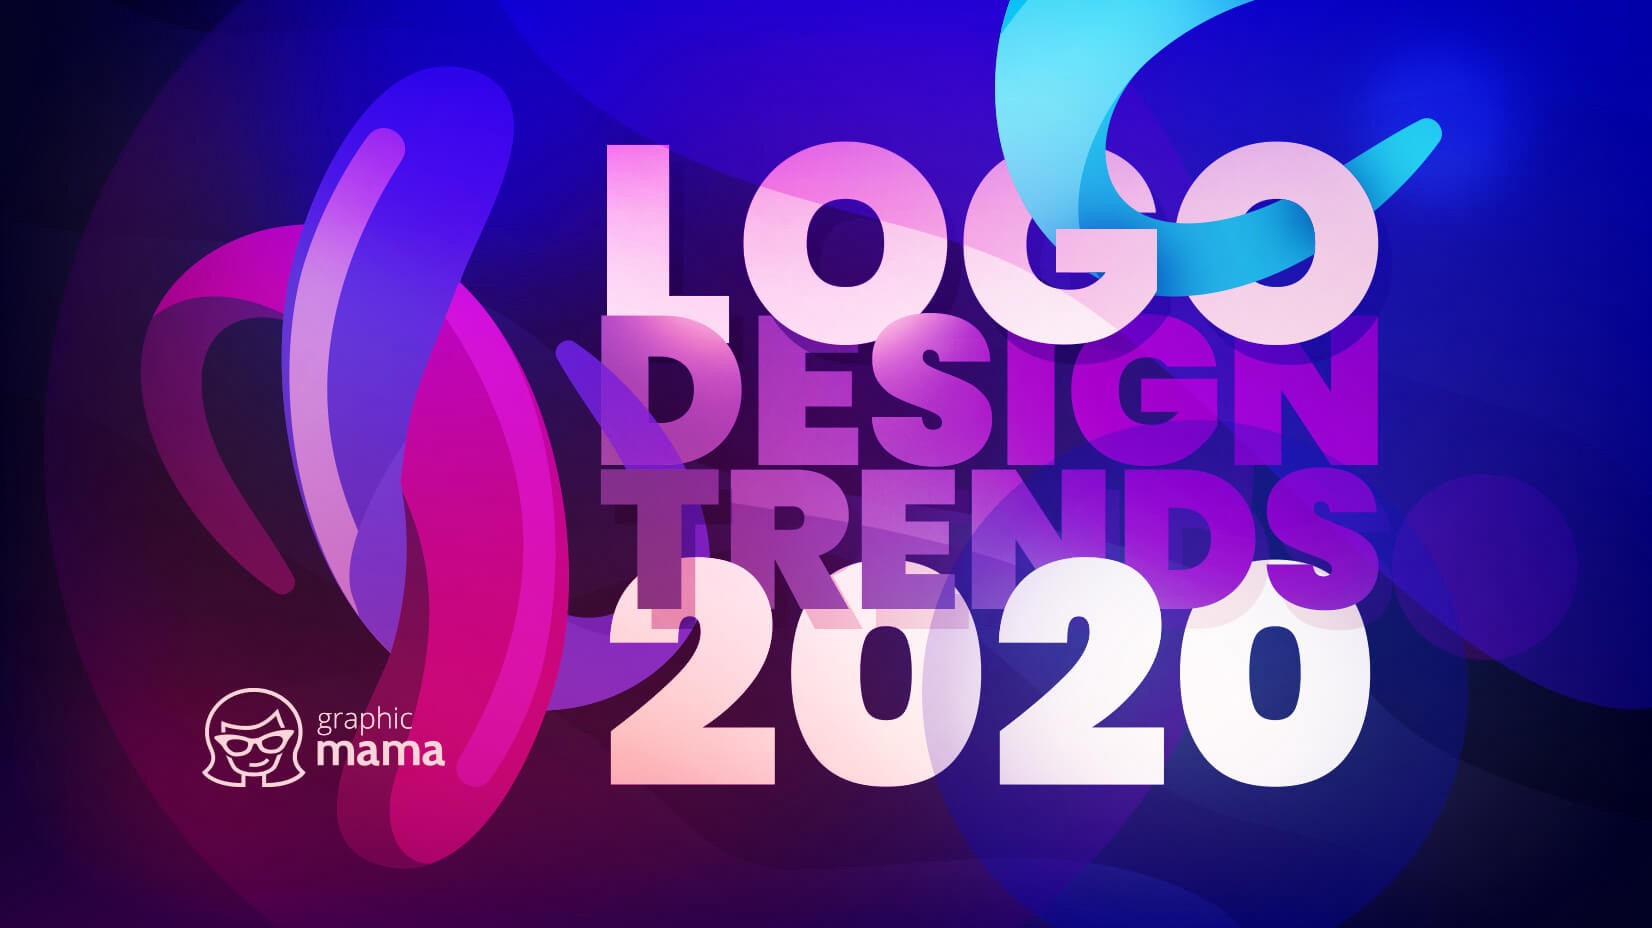 2020 Logo Design Trends.Logo Design Trends For 2020 Strong Dynamic Graphicmama